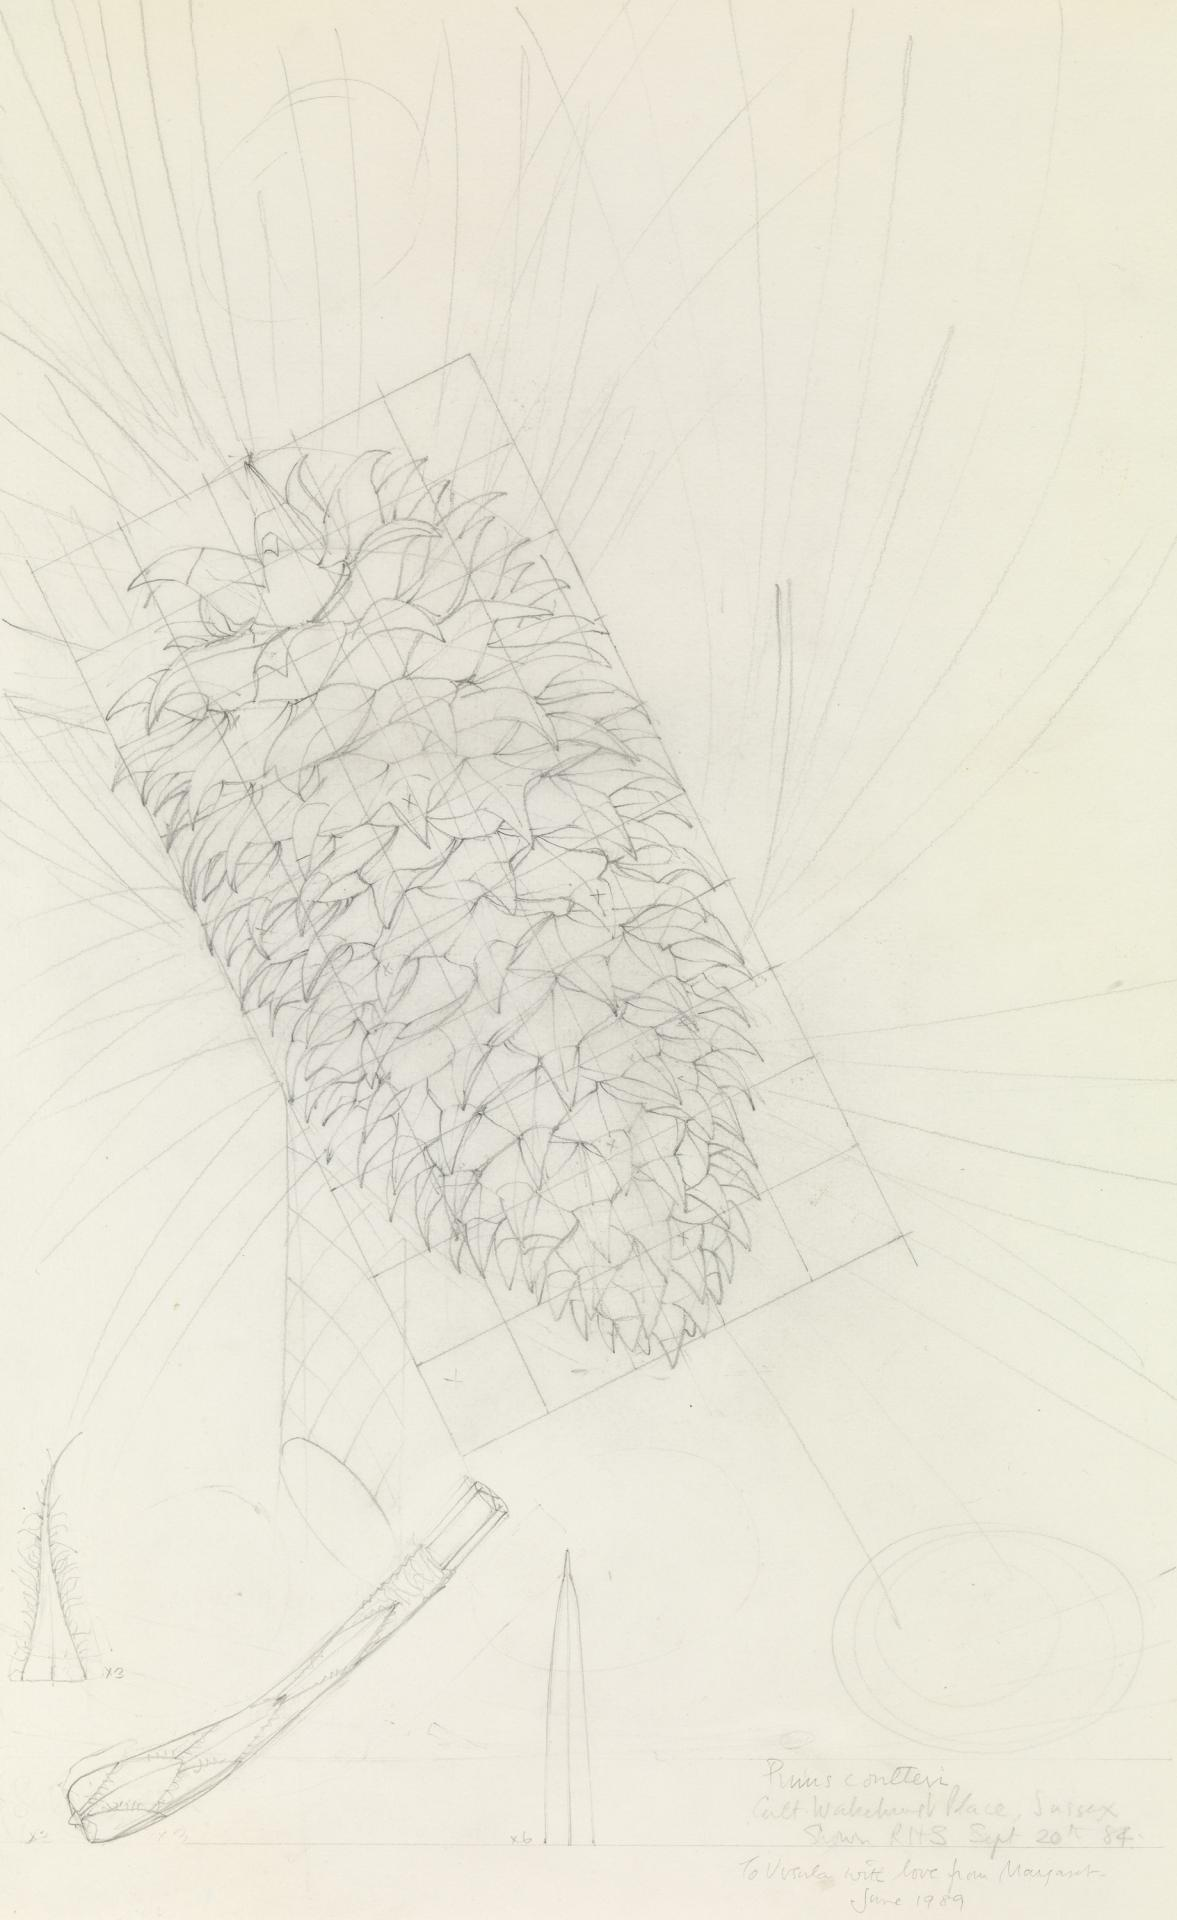 Working drawing for Pinus coneteri